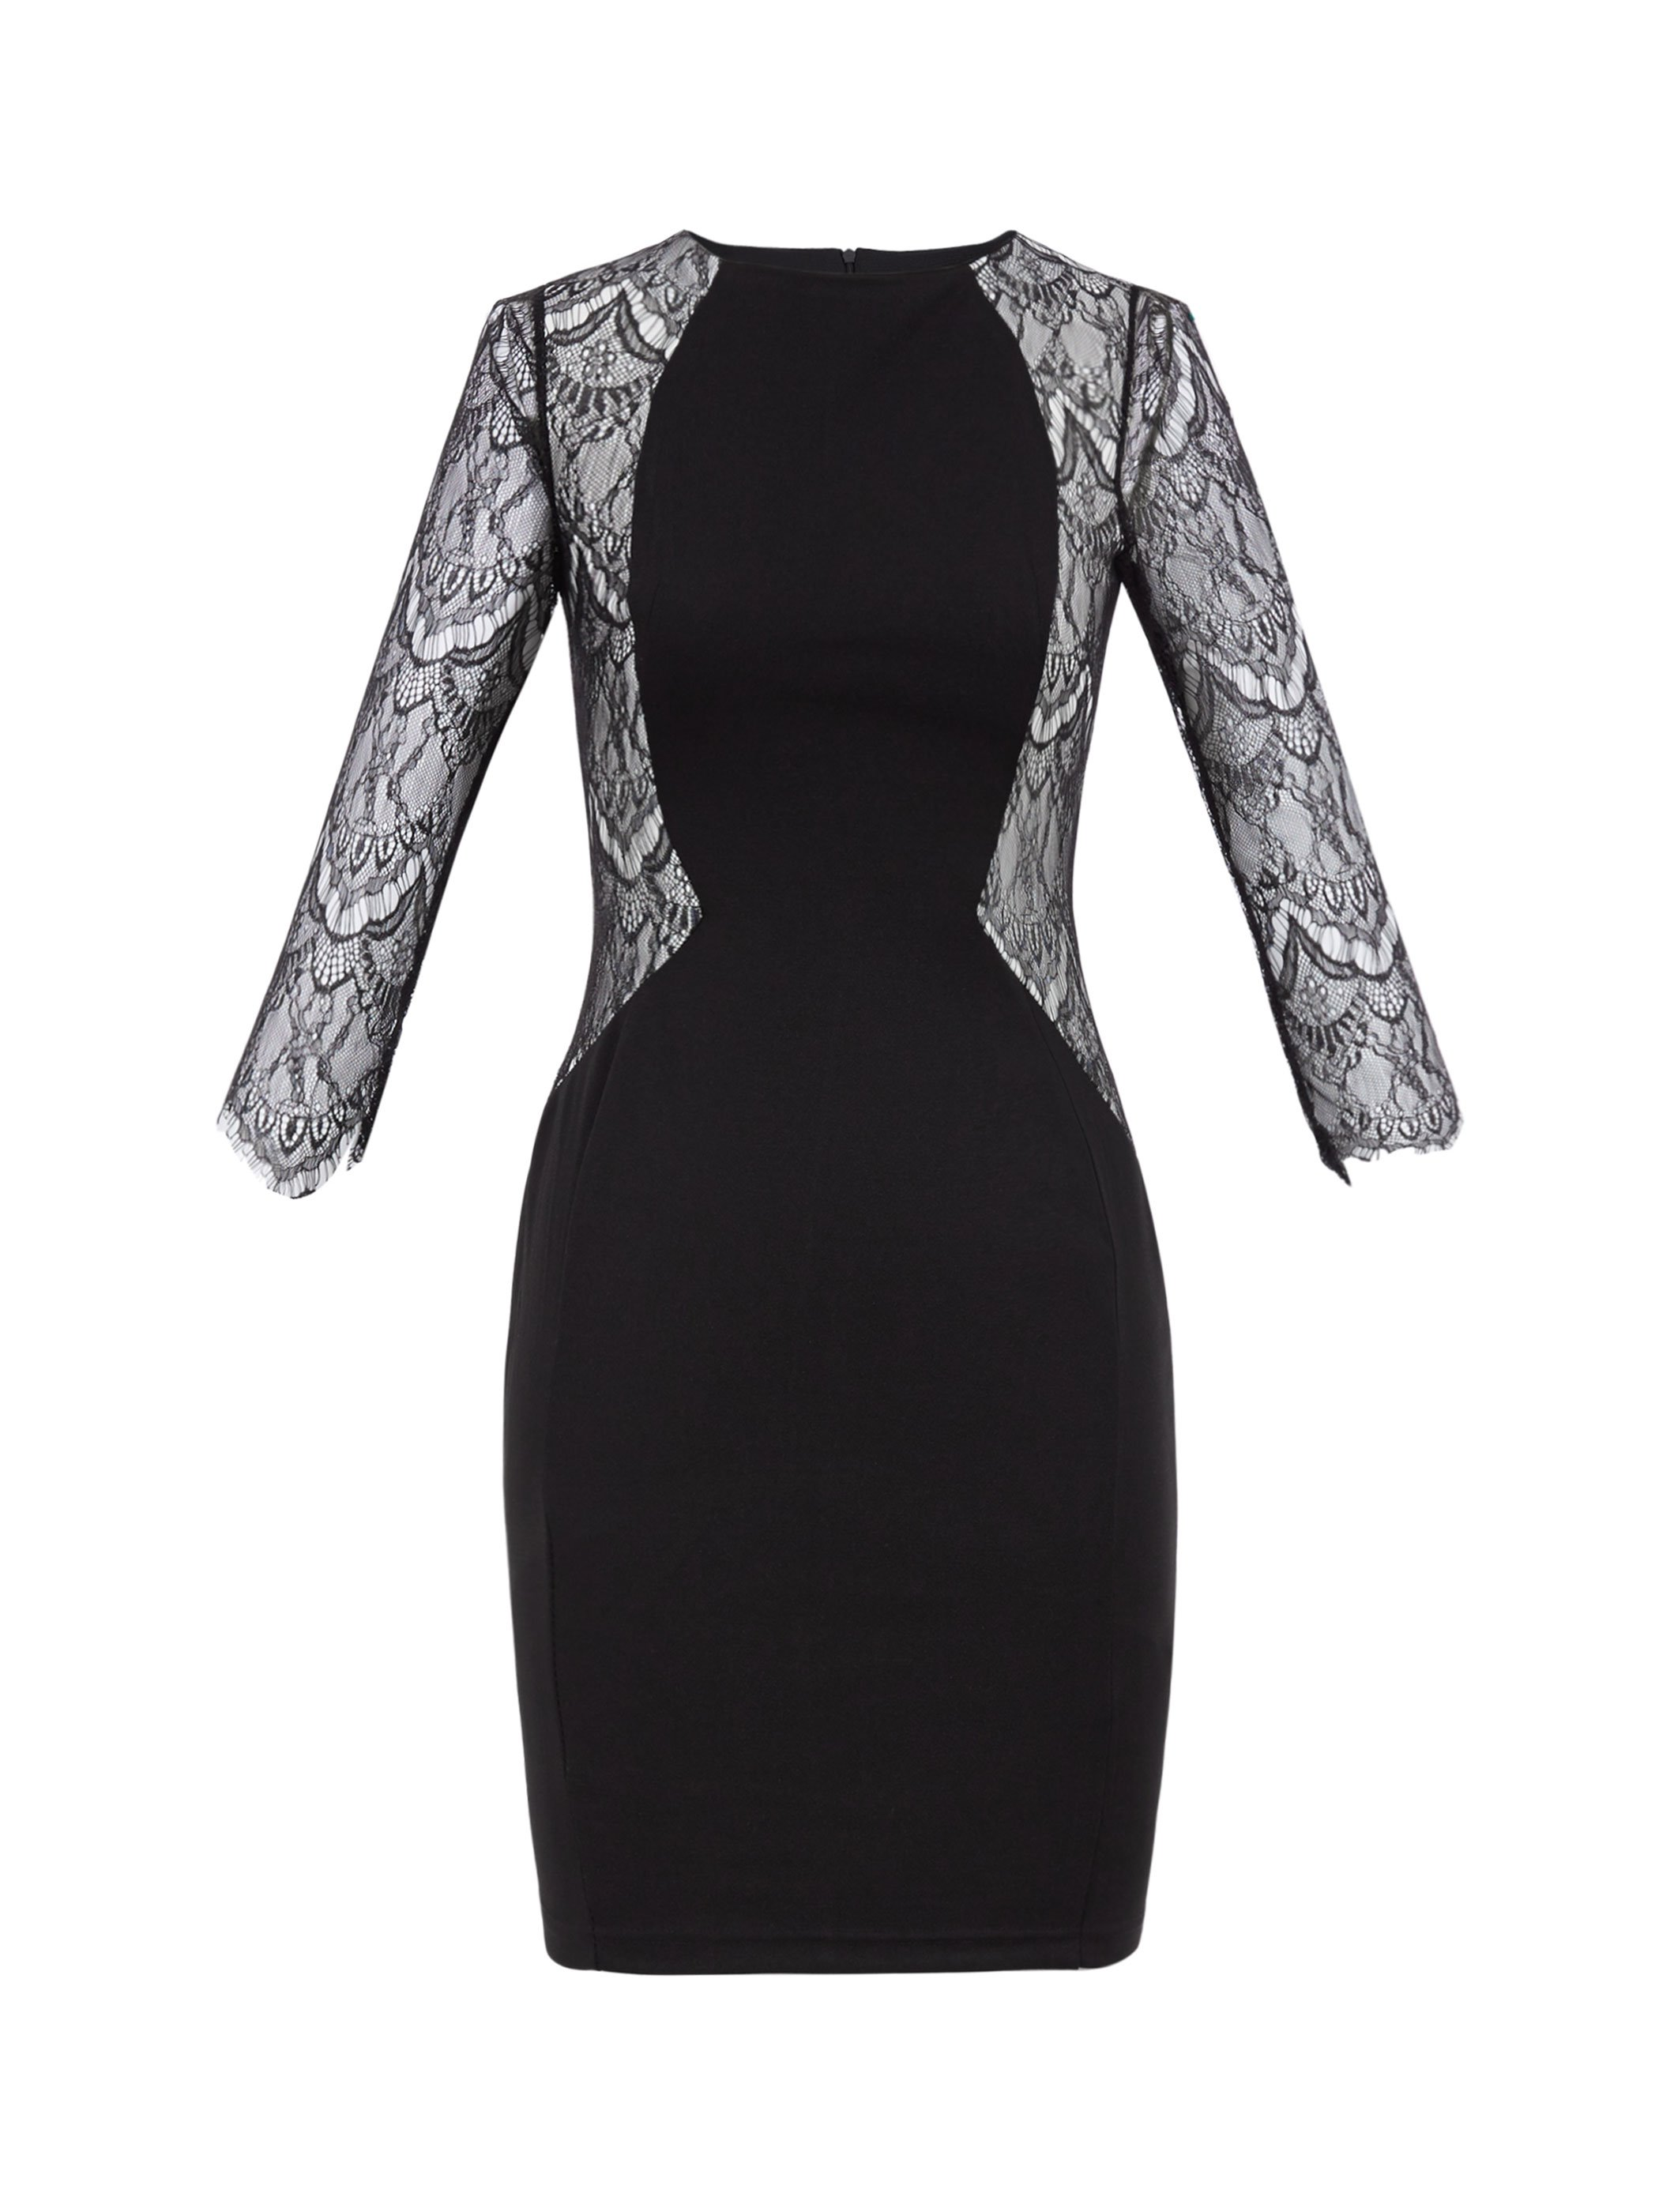 Ericdress Lace Patchwork See-Through Round Collar Sheath Dress